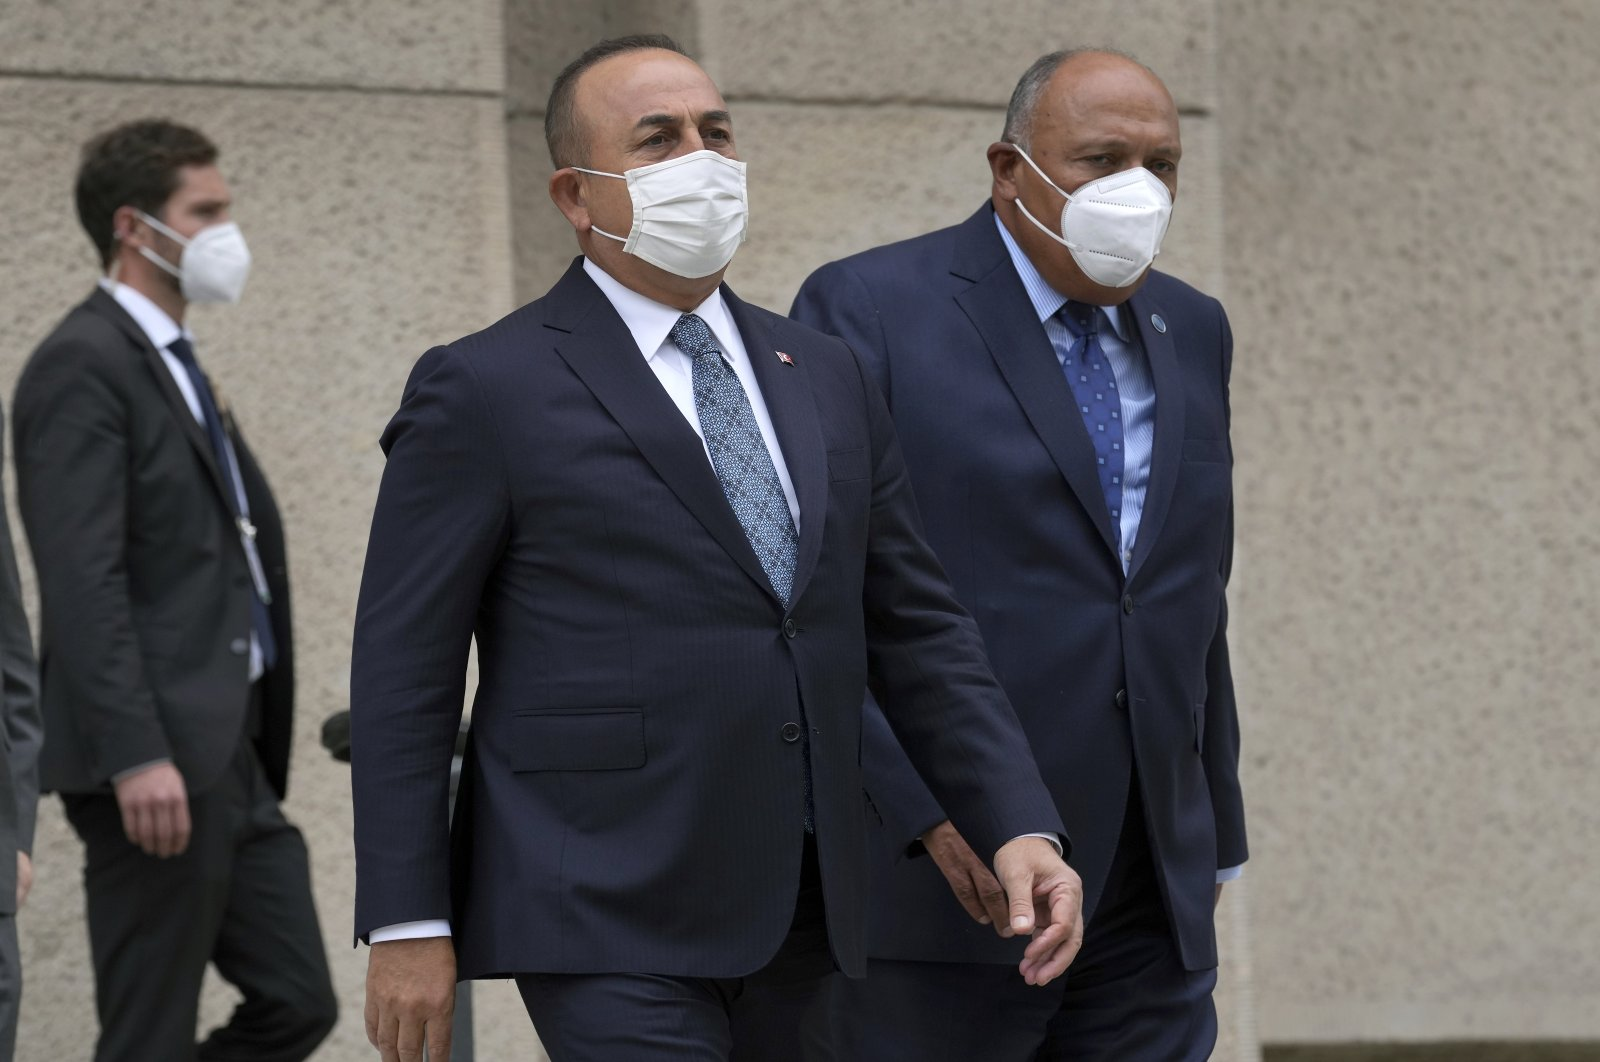 """Turkish Foreign Minister Mevlüt Çavuşoğlu (L) and his counterpart from Egypt, Sameh Shoukry (R), arrive for a group photo during the """"Second Berlin Conference on Libya"""" at the foreign office in Berlin, Germany, June 23, 2021. (AP Photo)"""